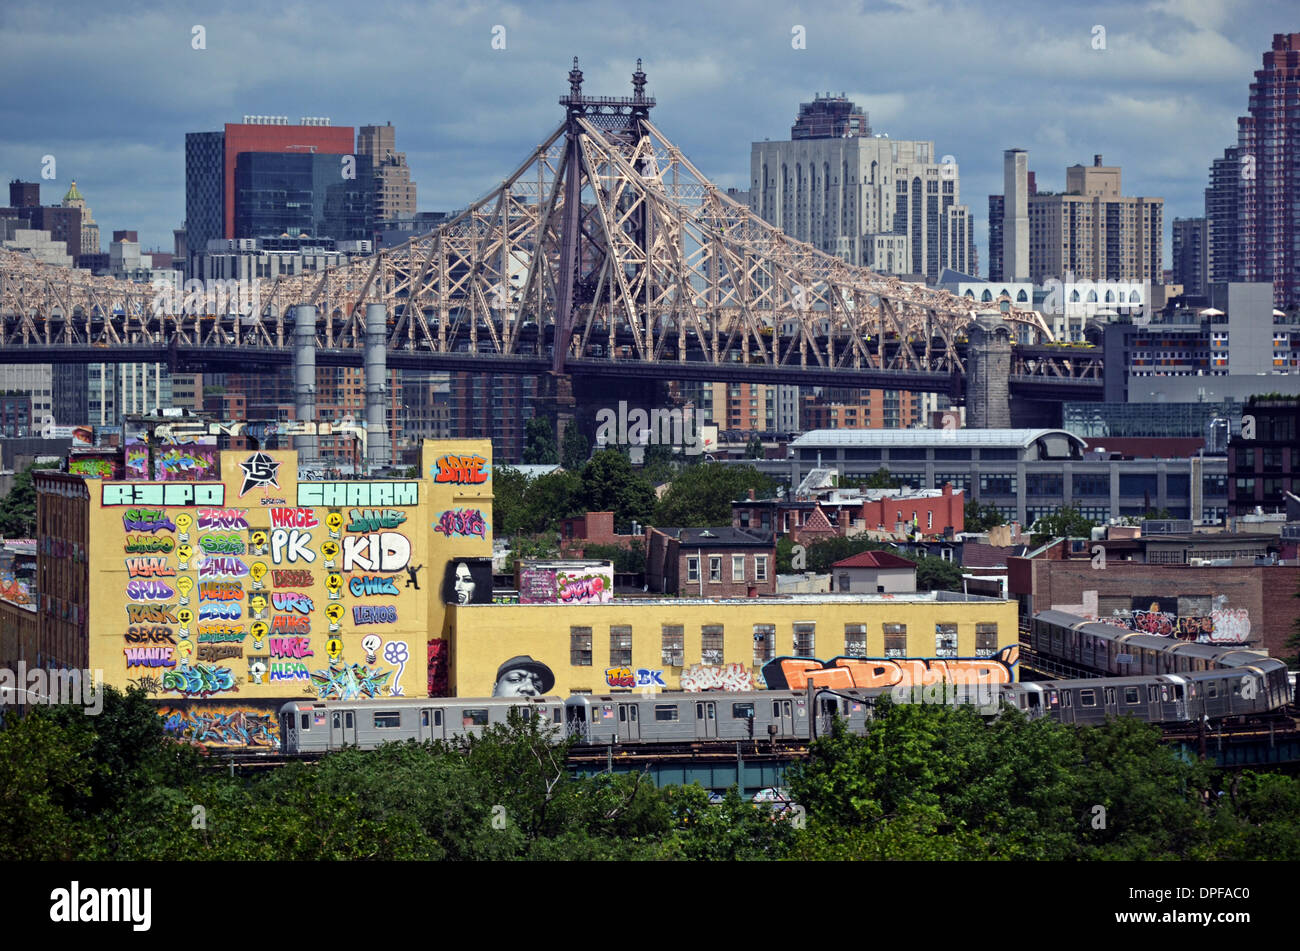 5 pointz graffiti museum with the 59th street bridge and manhattan skyline in the background and the subway in the foreground